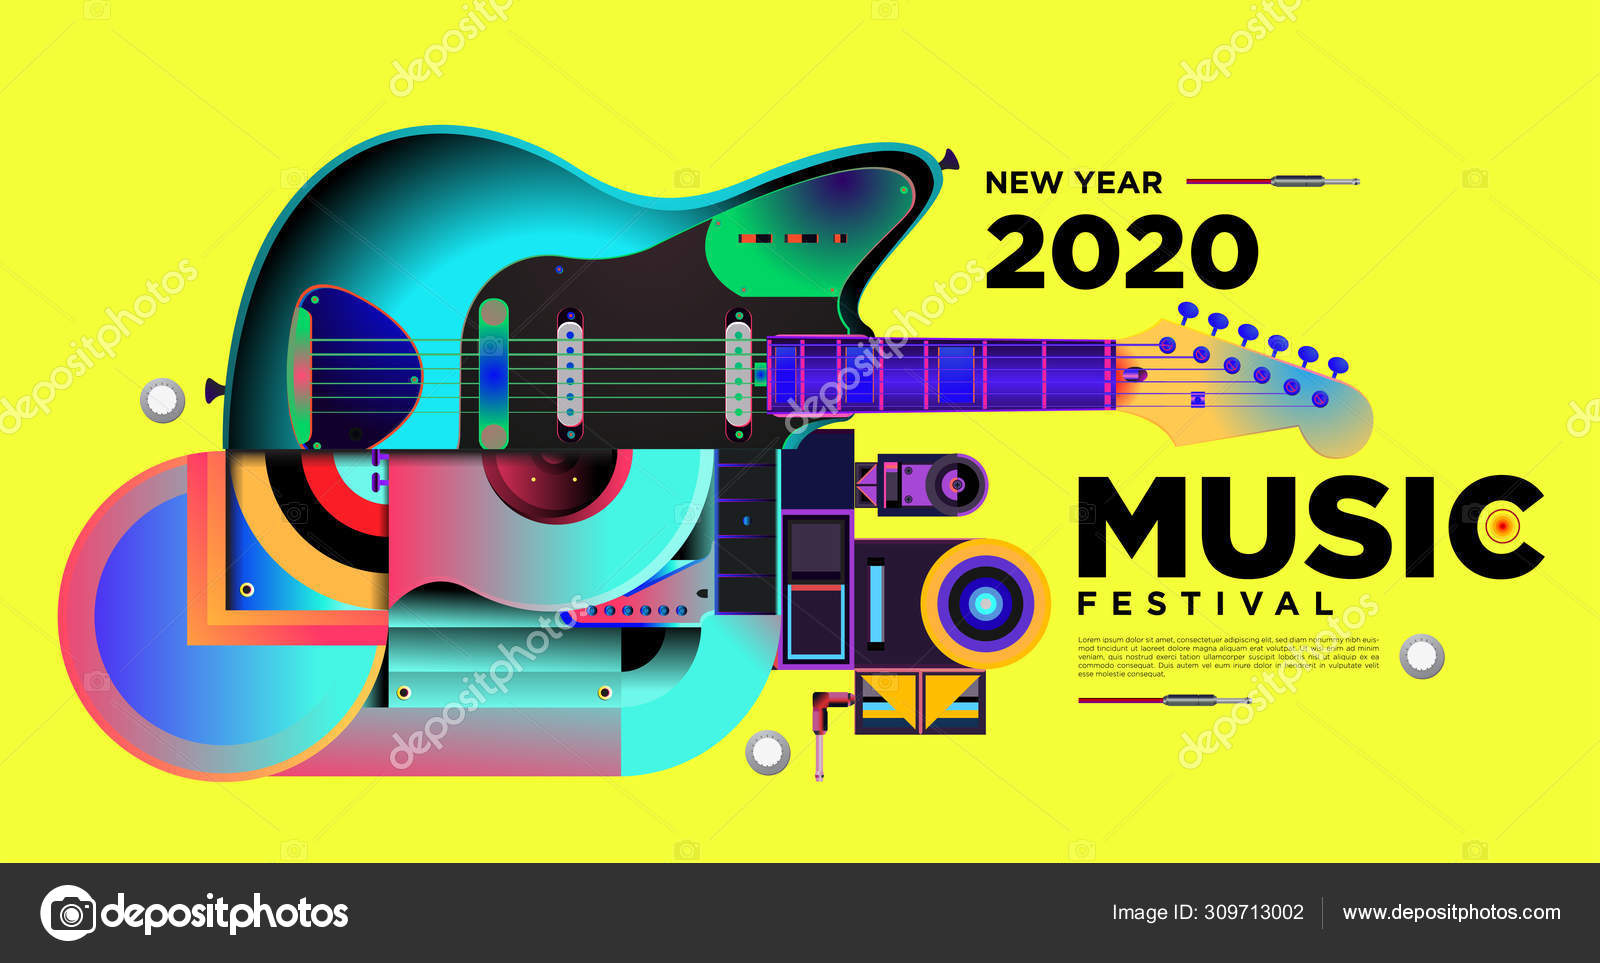 Music Festival Illustration Design 2020 New Year Party Event